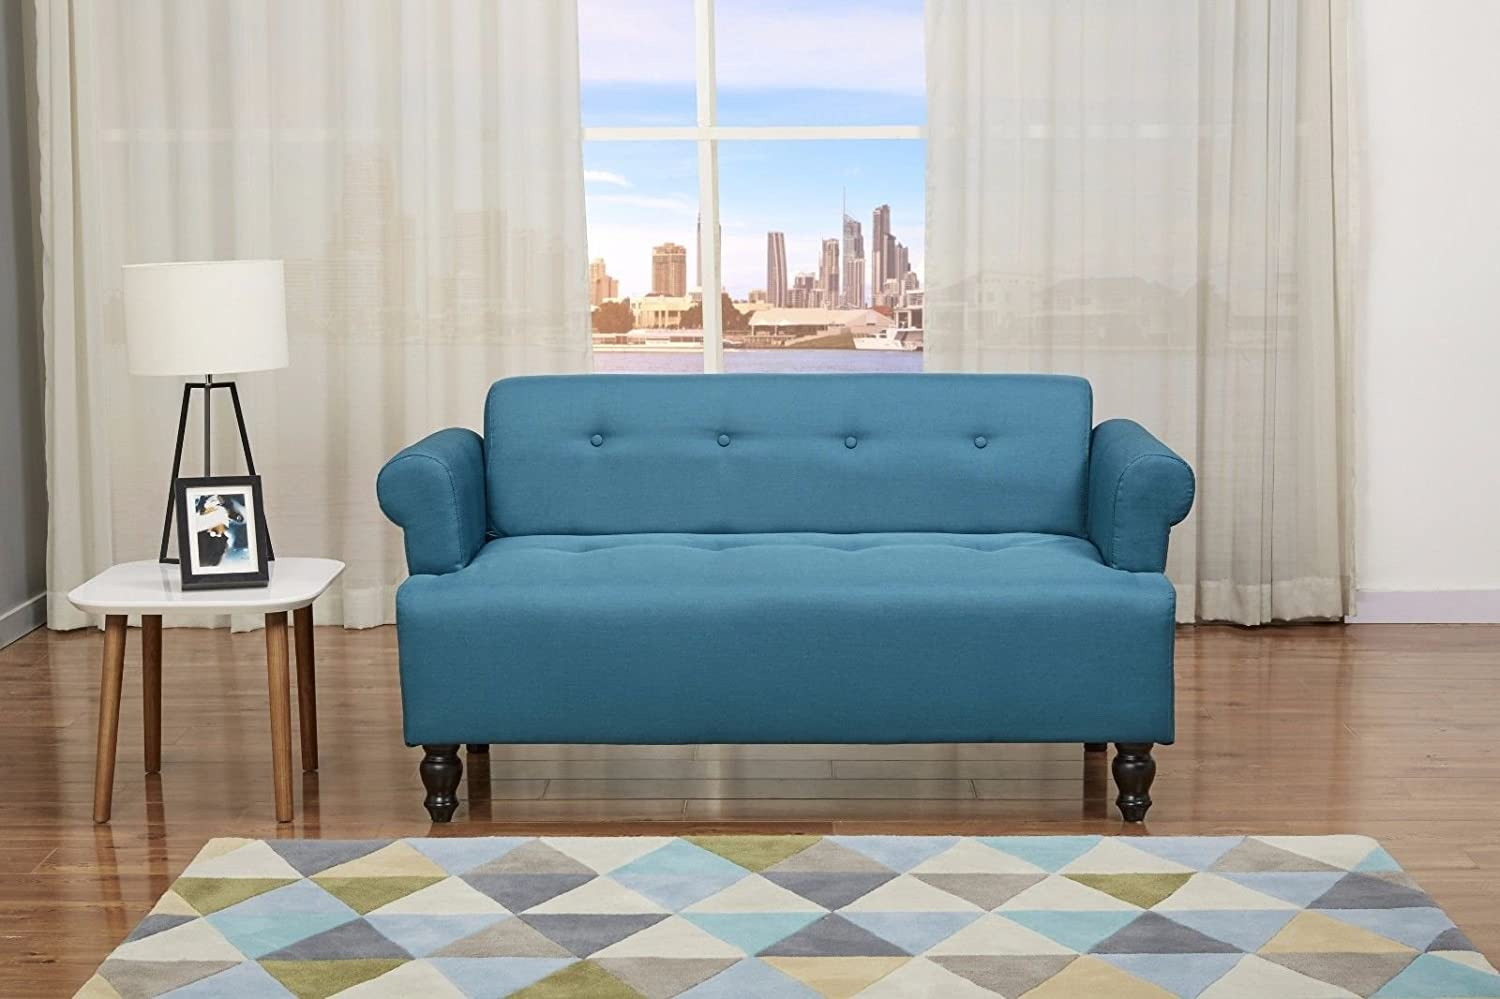 Victoria 2 Seater Sofa- Fabric Button Scrolled- Teal Blue Modern:  Amazon.co.uk: Kitchen & Home